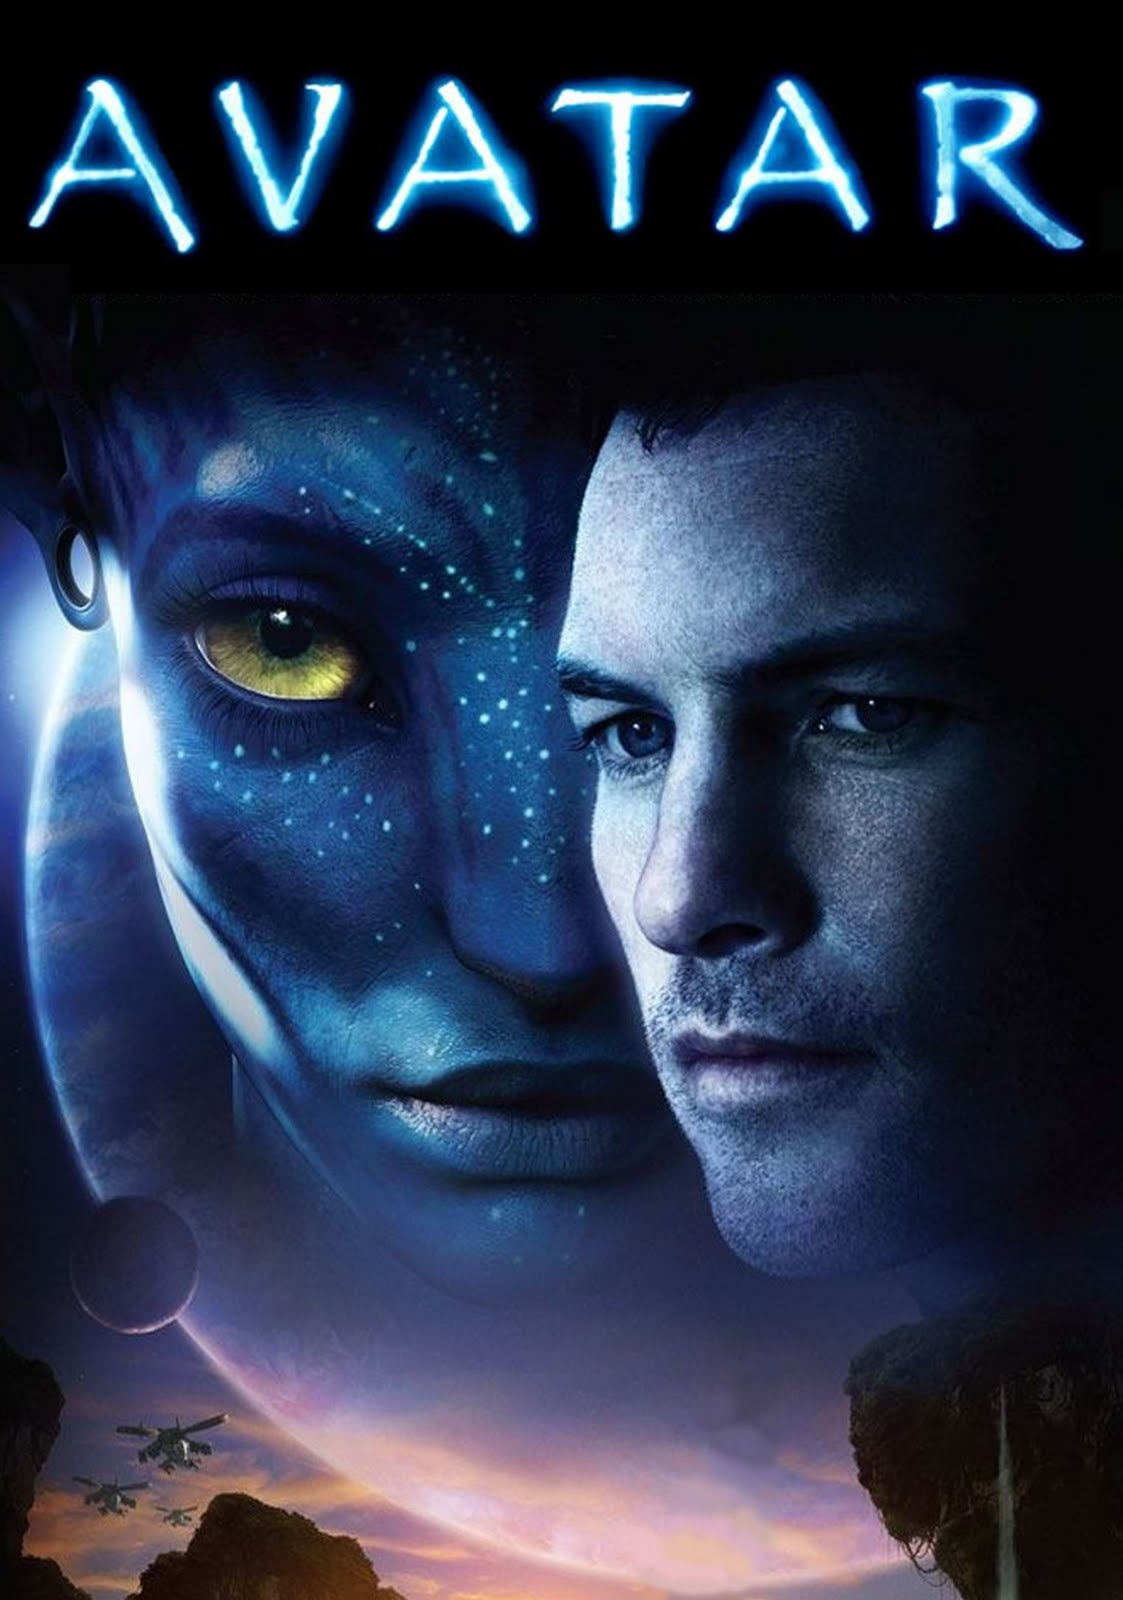 movies latest dvd avatar cover